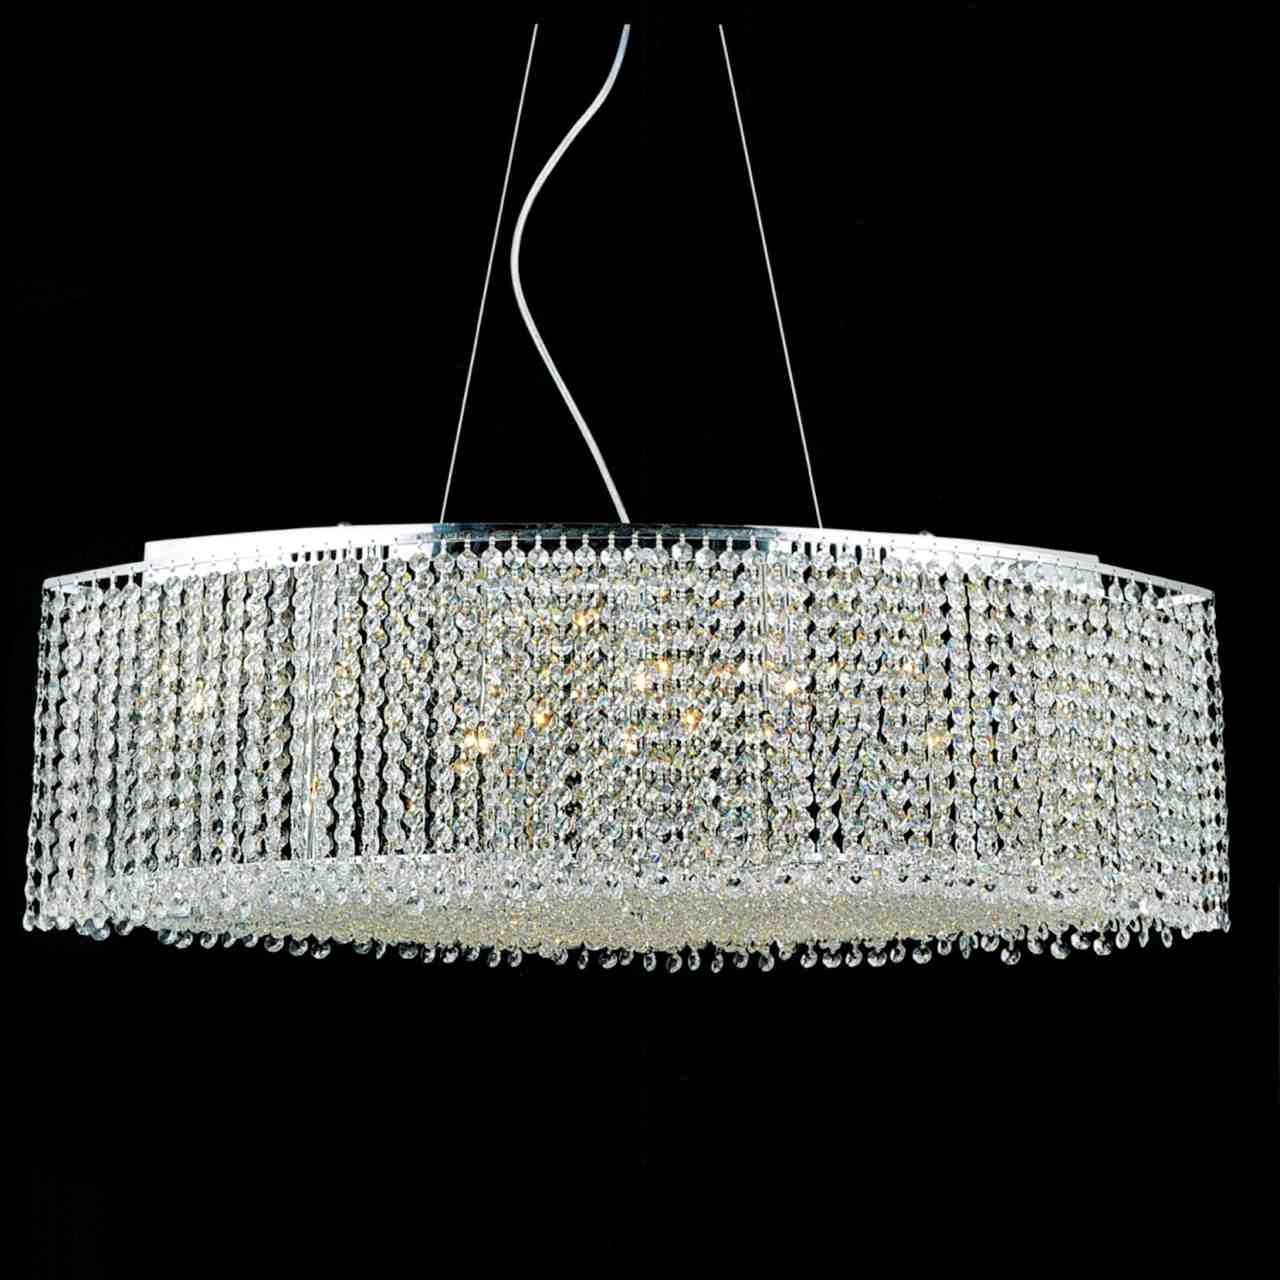 Brizzo Lighting Stores 35 Rainbow Modern Linear Crystal Within Chrome And Crystal Chandelier (View 6 of 15)